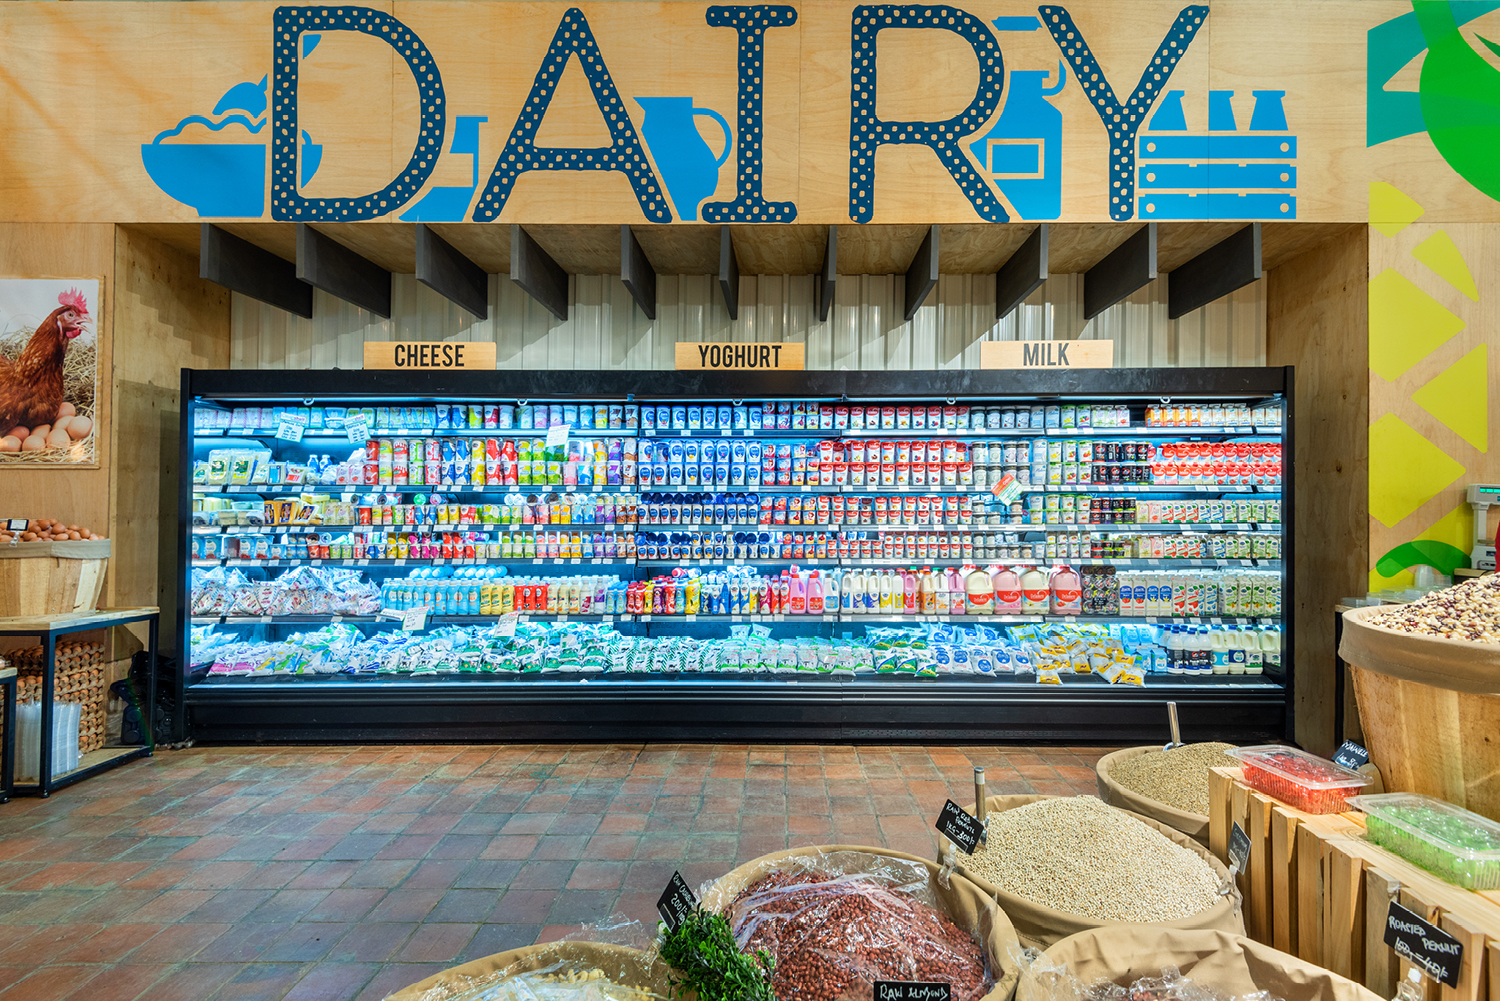 big supermarket fridge filled with dairy products